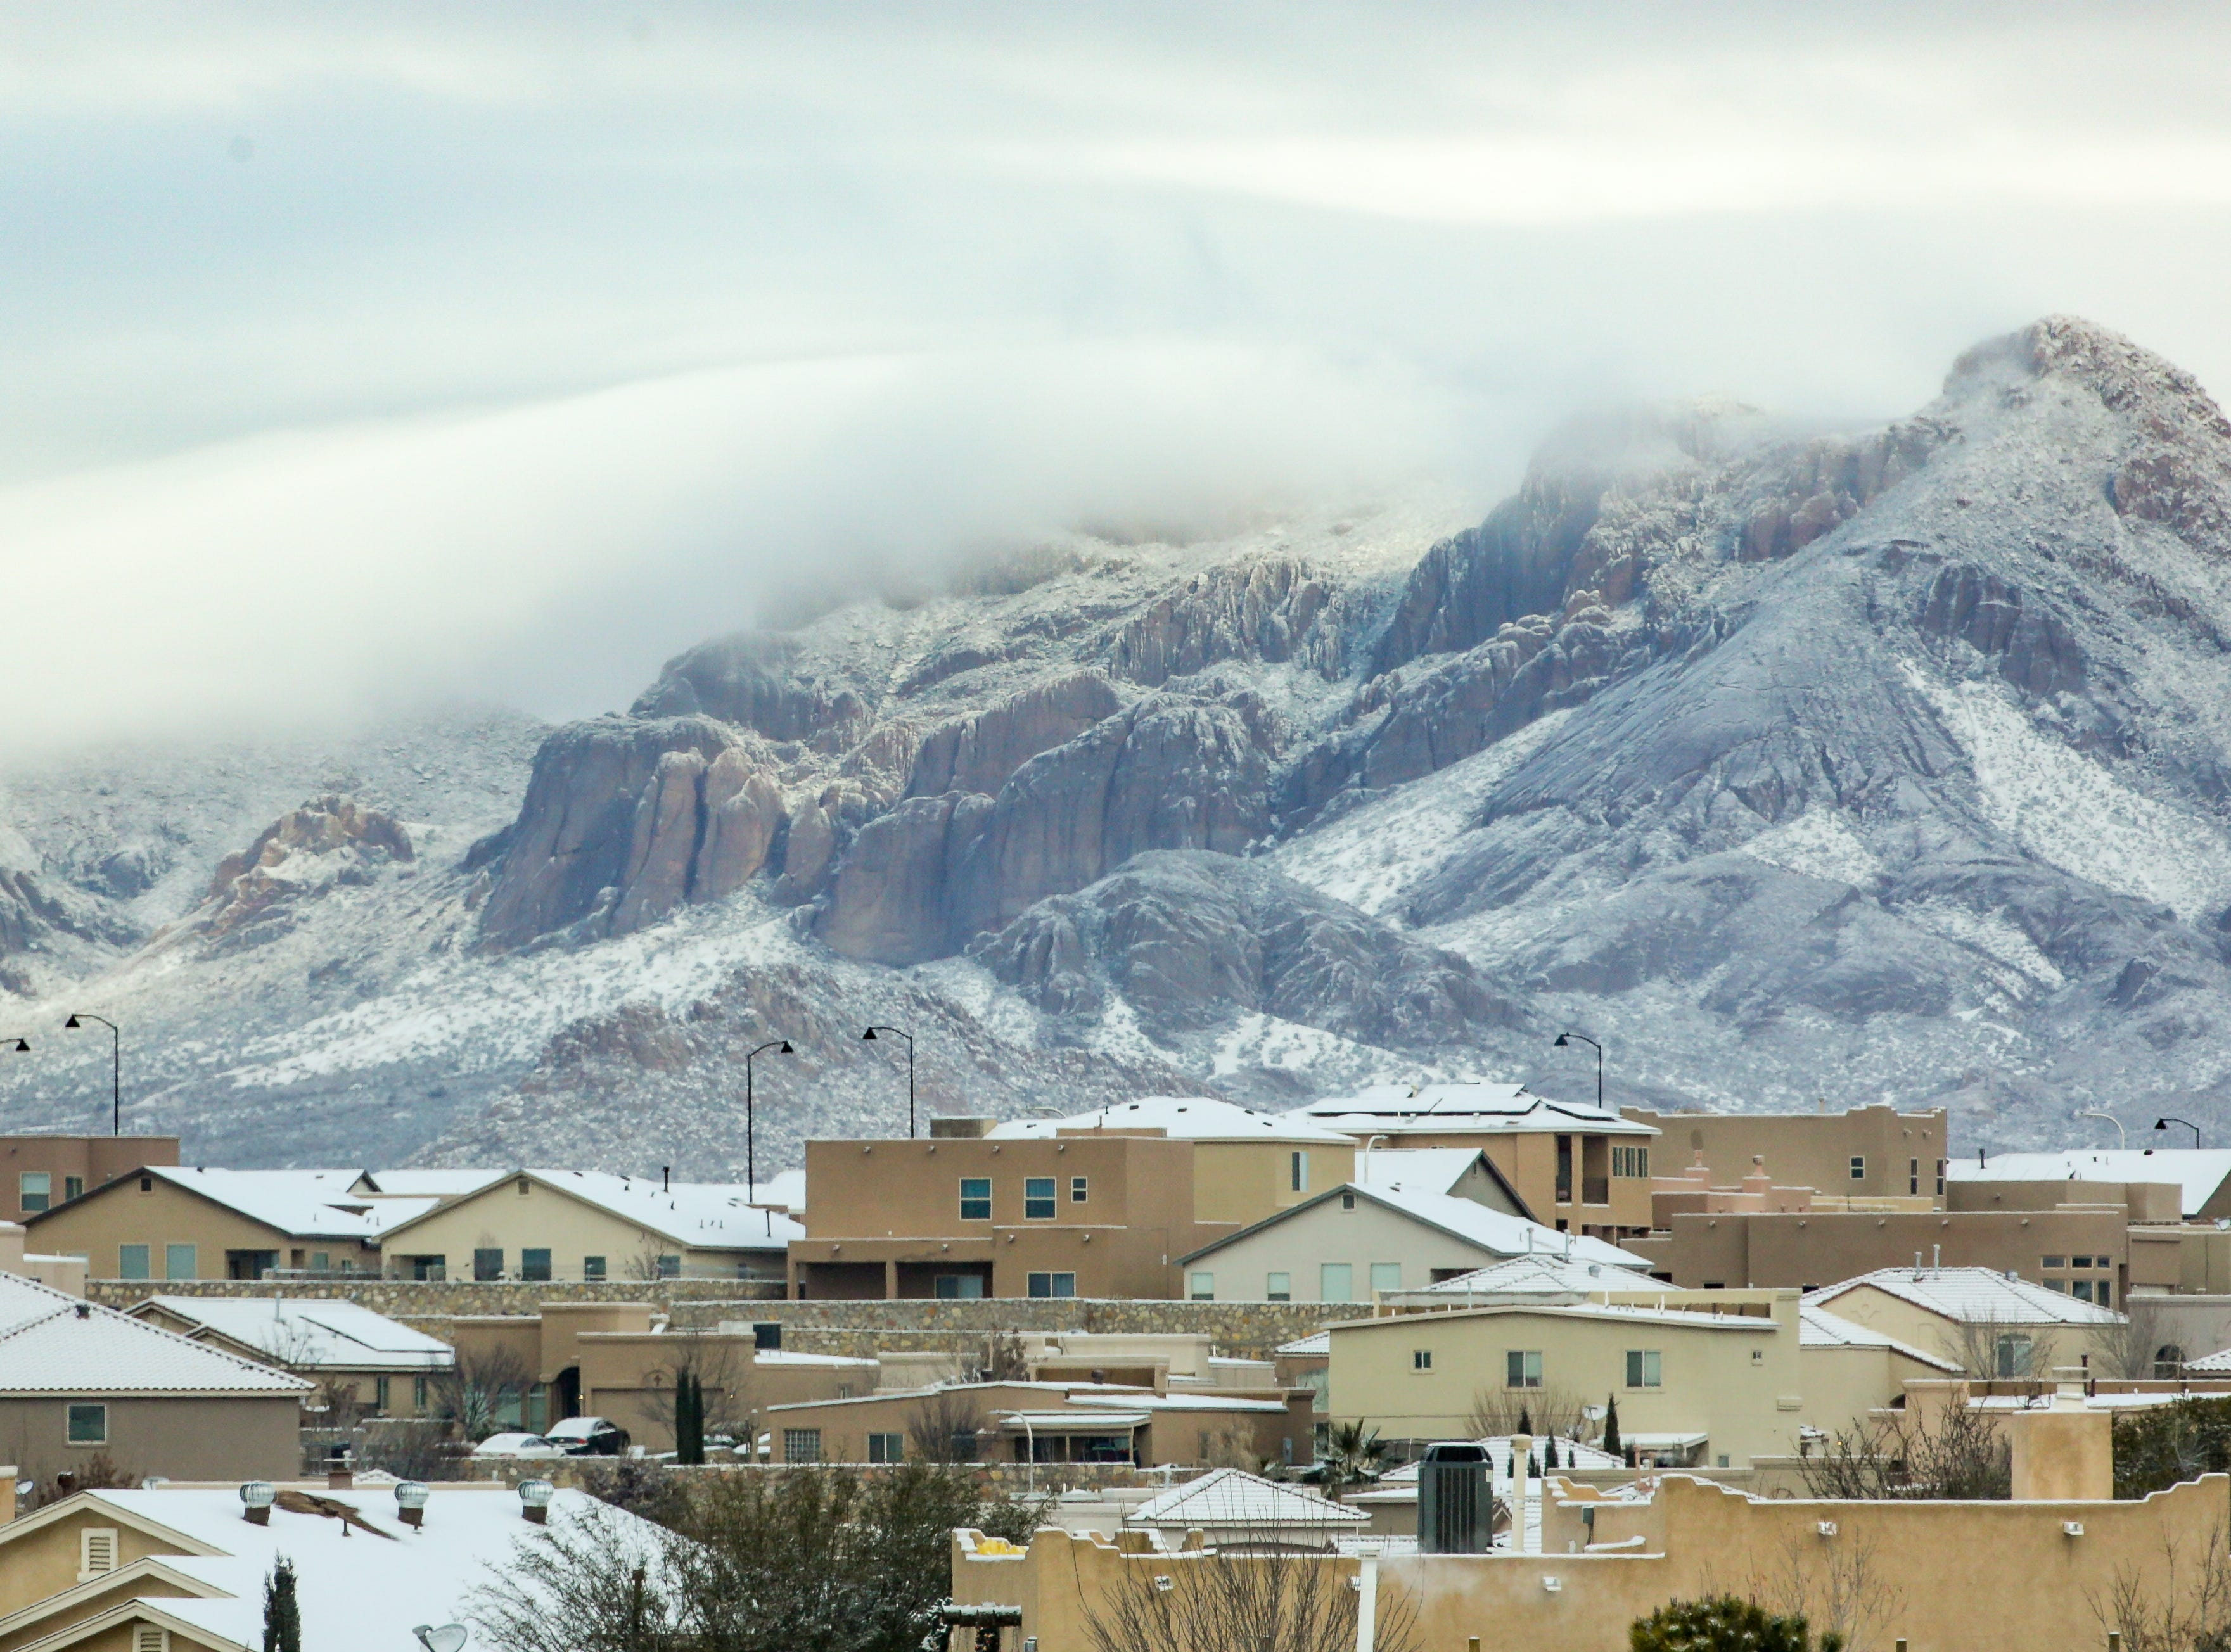 Rooftops are covered with snow as the Doña Ana Mountains are pictured in the background on Saturday Dec. 29, 2019.